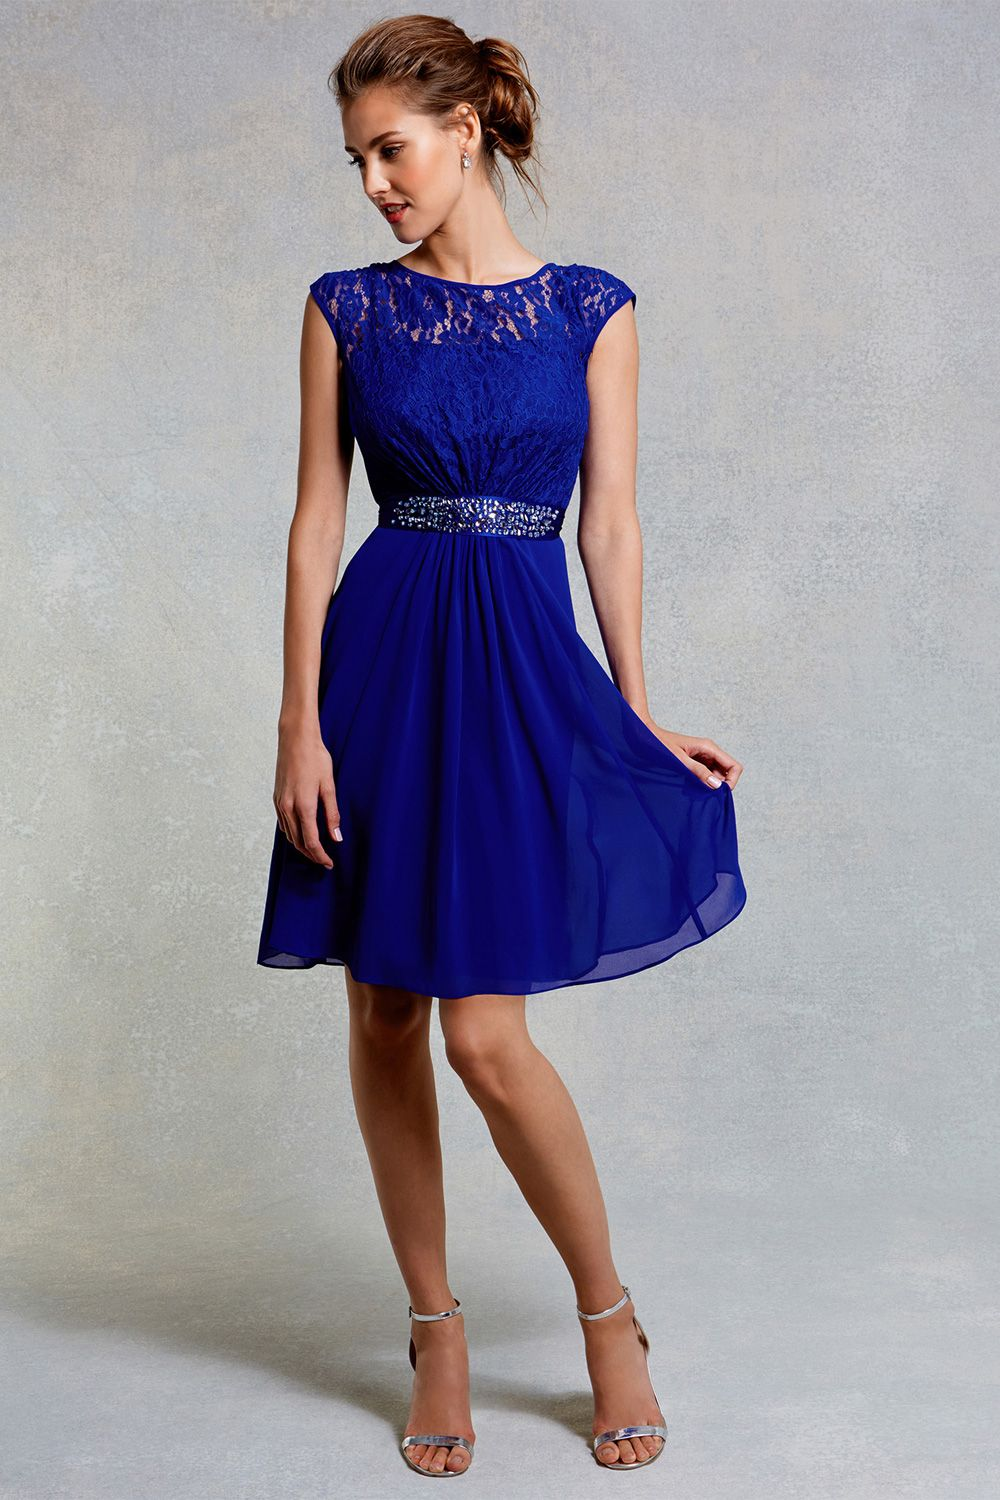 Lori Lee Lace Short Dress | vestidos | Pinterest | Bodas azules ...